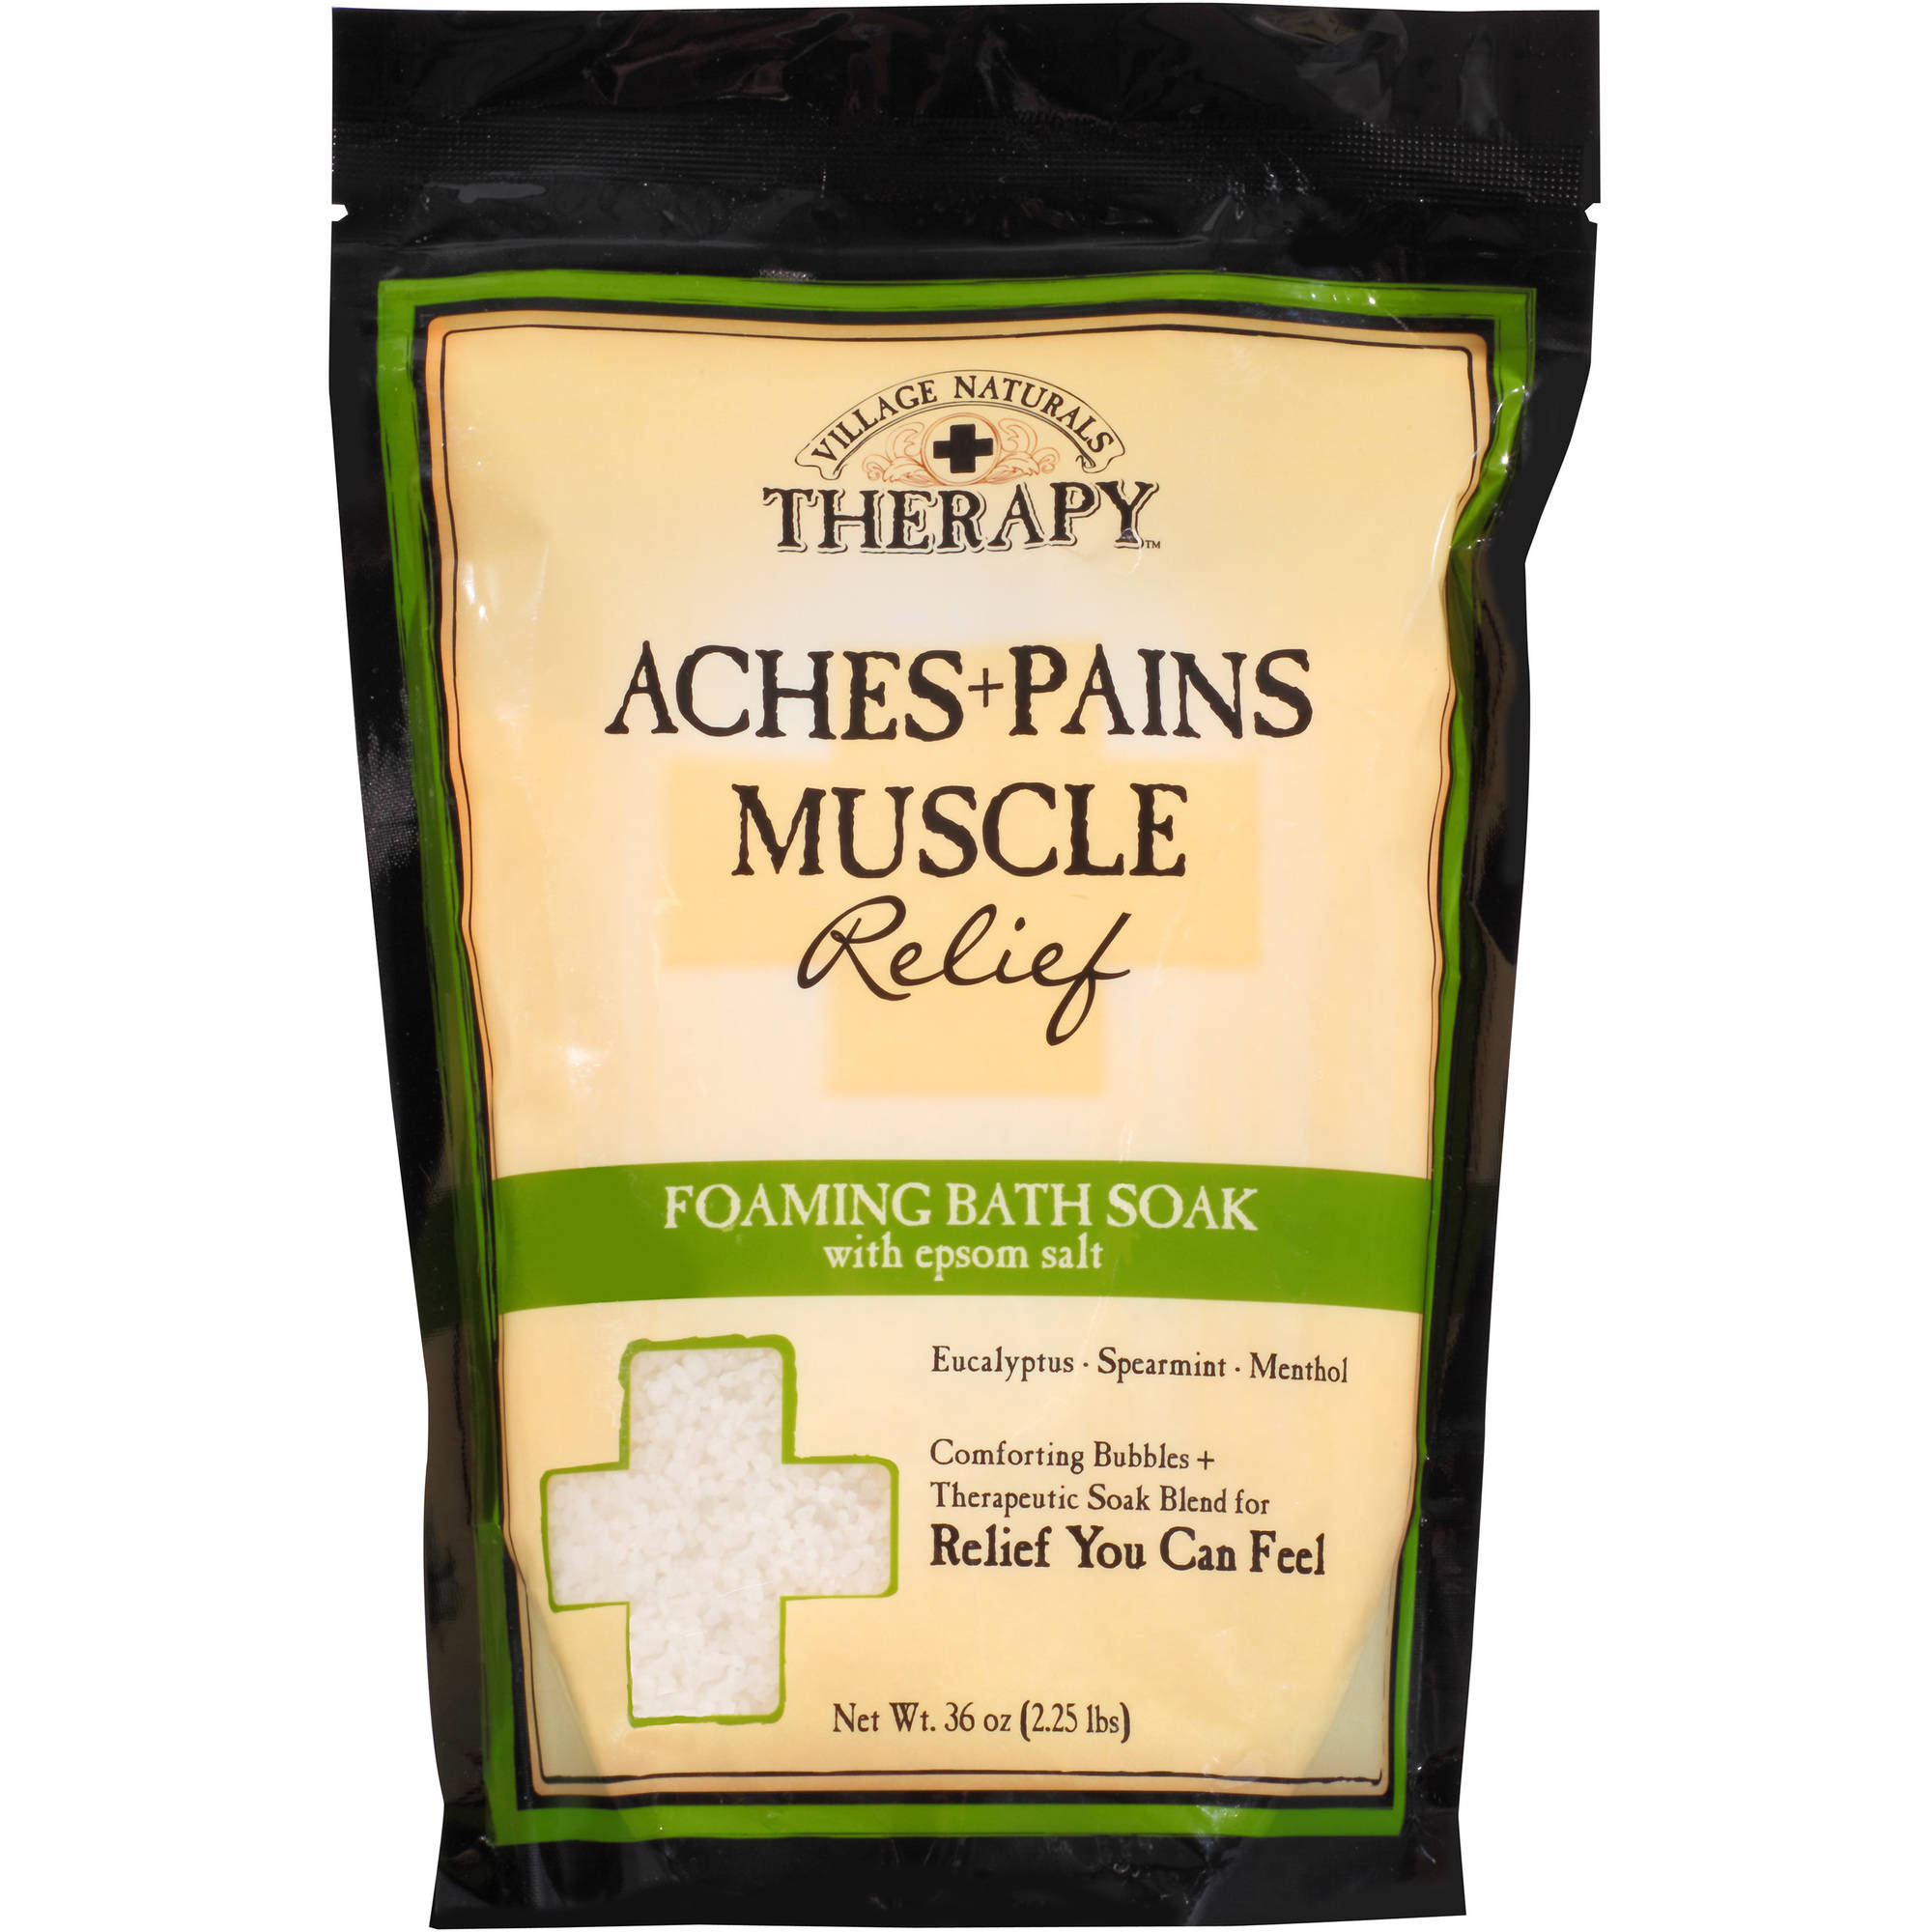 Village naturals therapy aches pains relief mineral bath soak village naturals therapy aches pains relief mineral bath soak 20 oz walmart negle Images